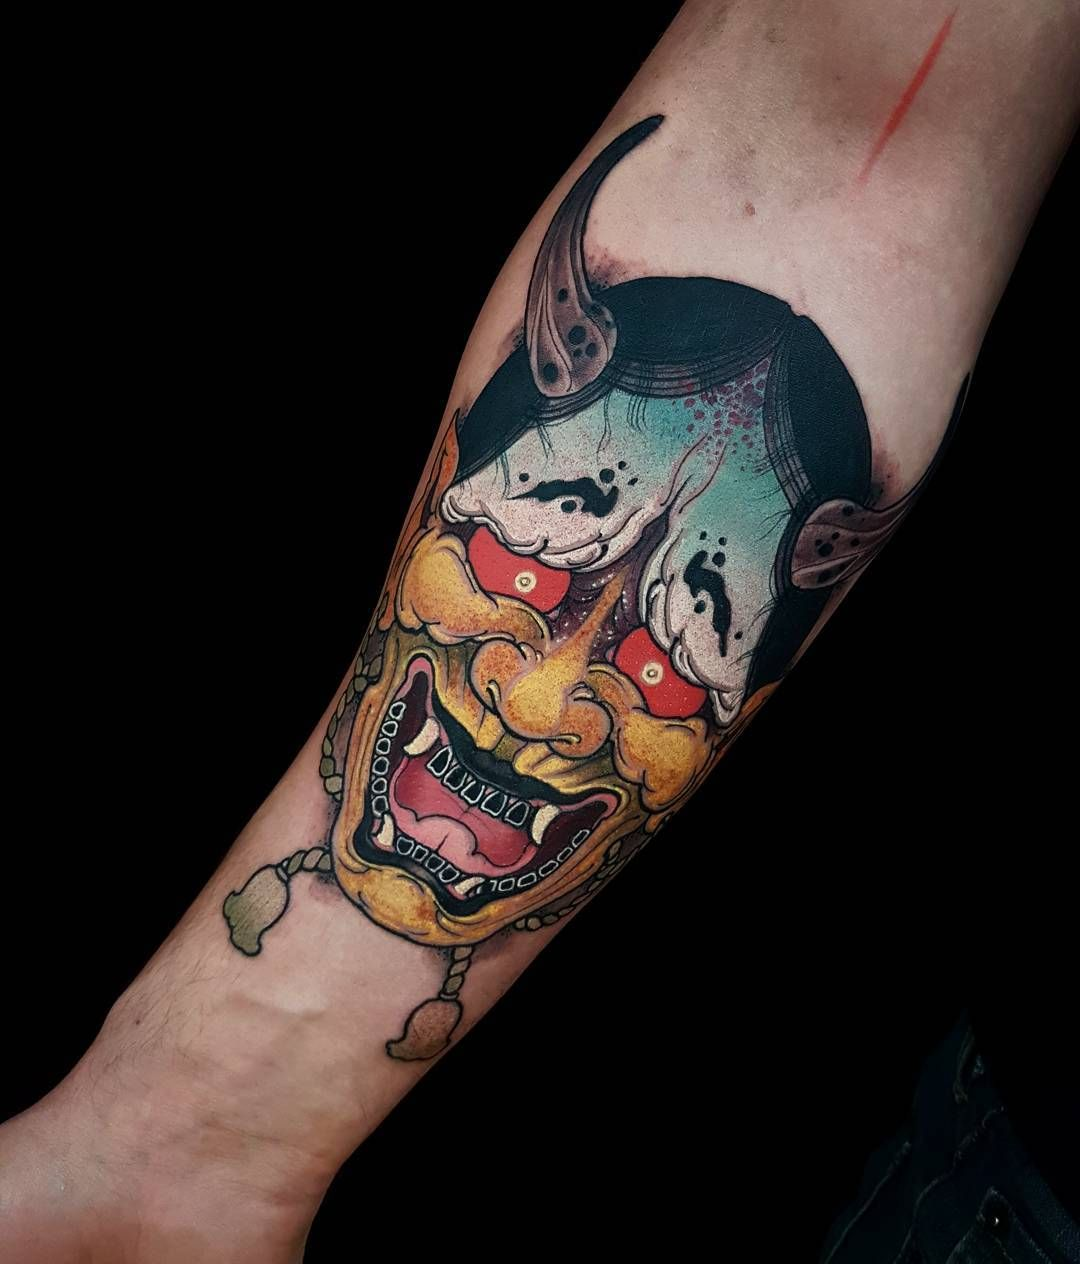 d7496f003 Badass scary Hannya mask tattoo idea for boys | Tattoo Ideas ...